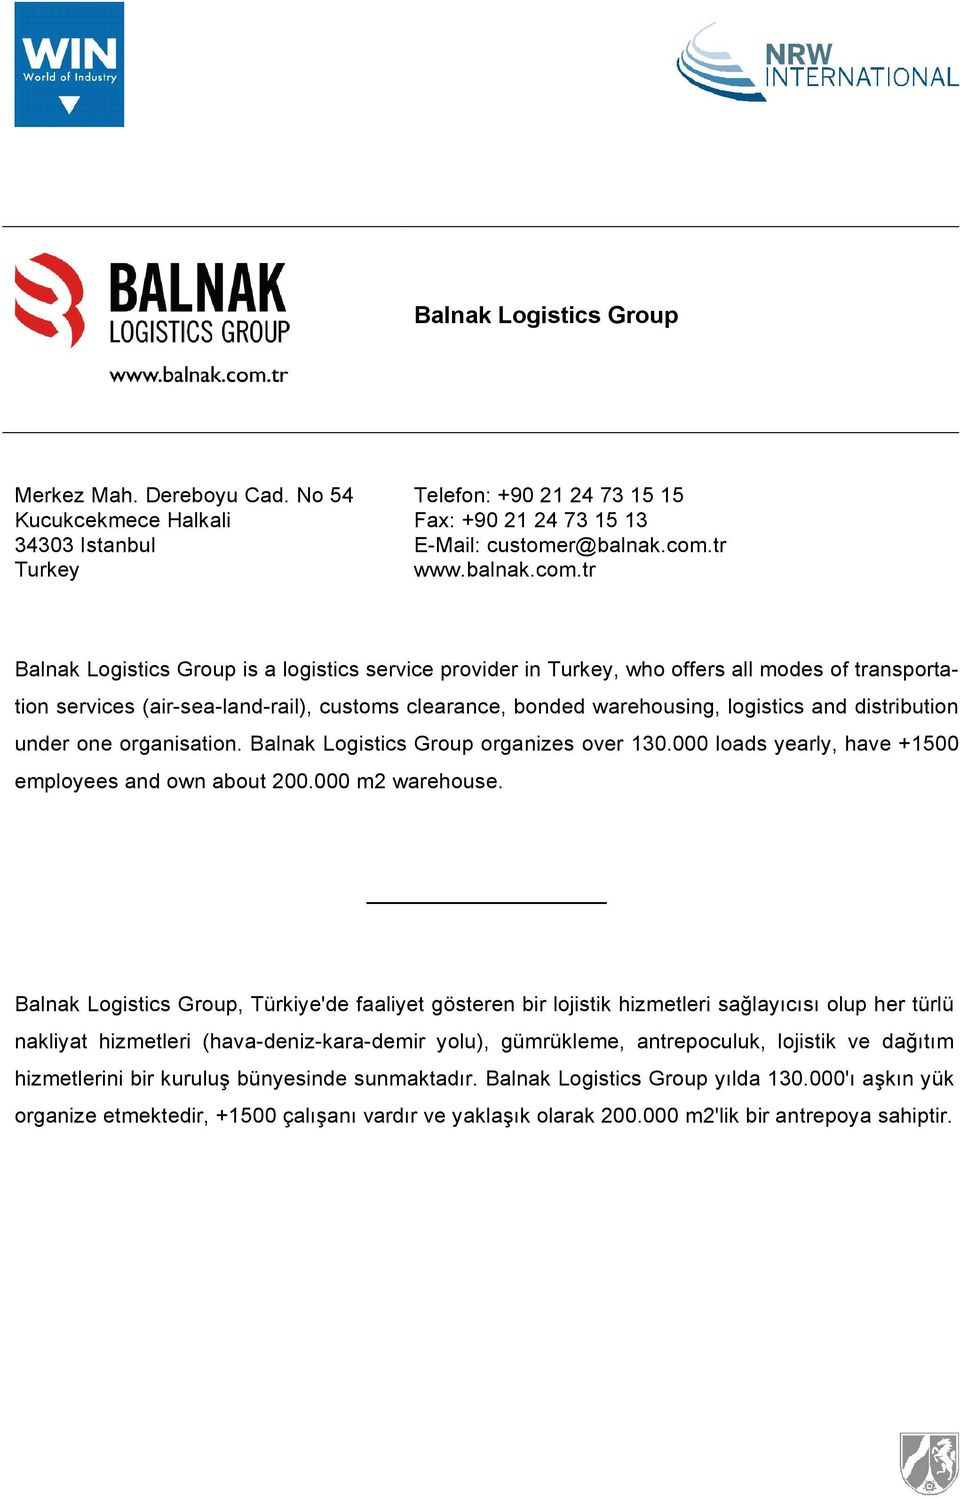 tr Balnak Logistics Group is a logistics service provider in Turkey, who offers all modes of transportation services (air-sea-land-rail), customs clearance, bonded warehousing, logistics and